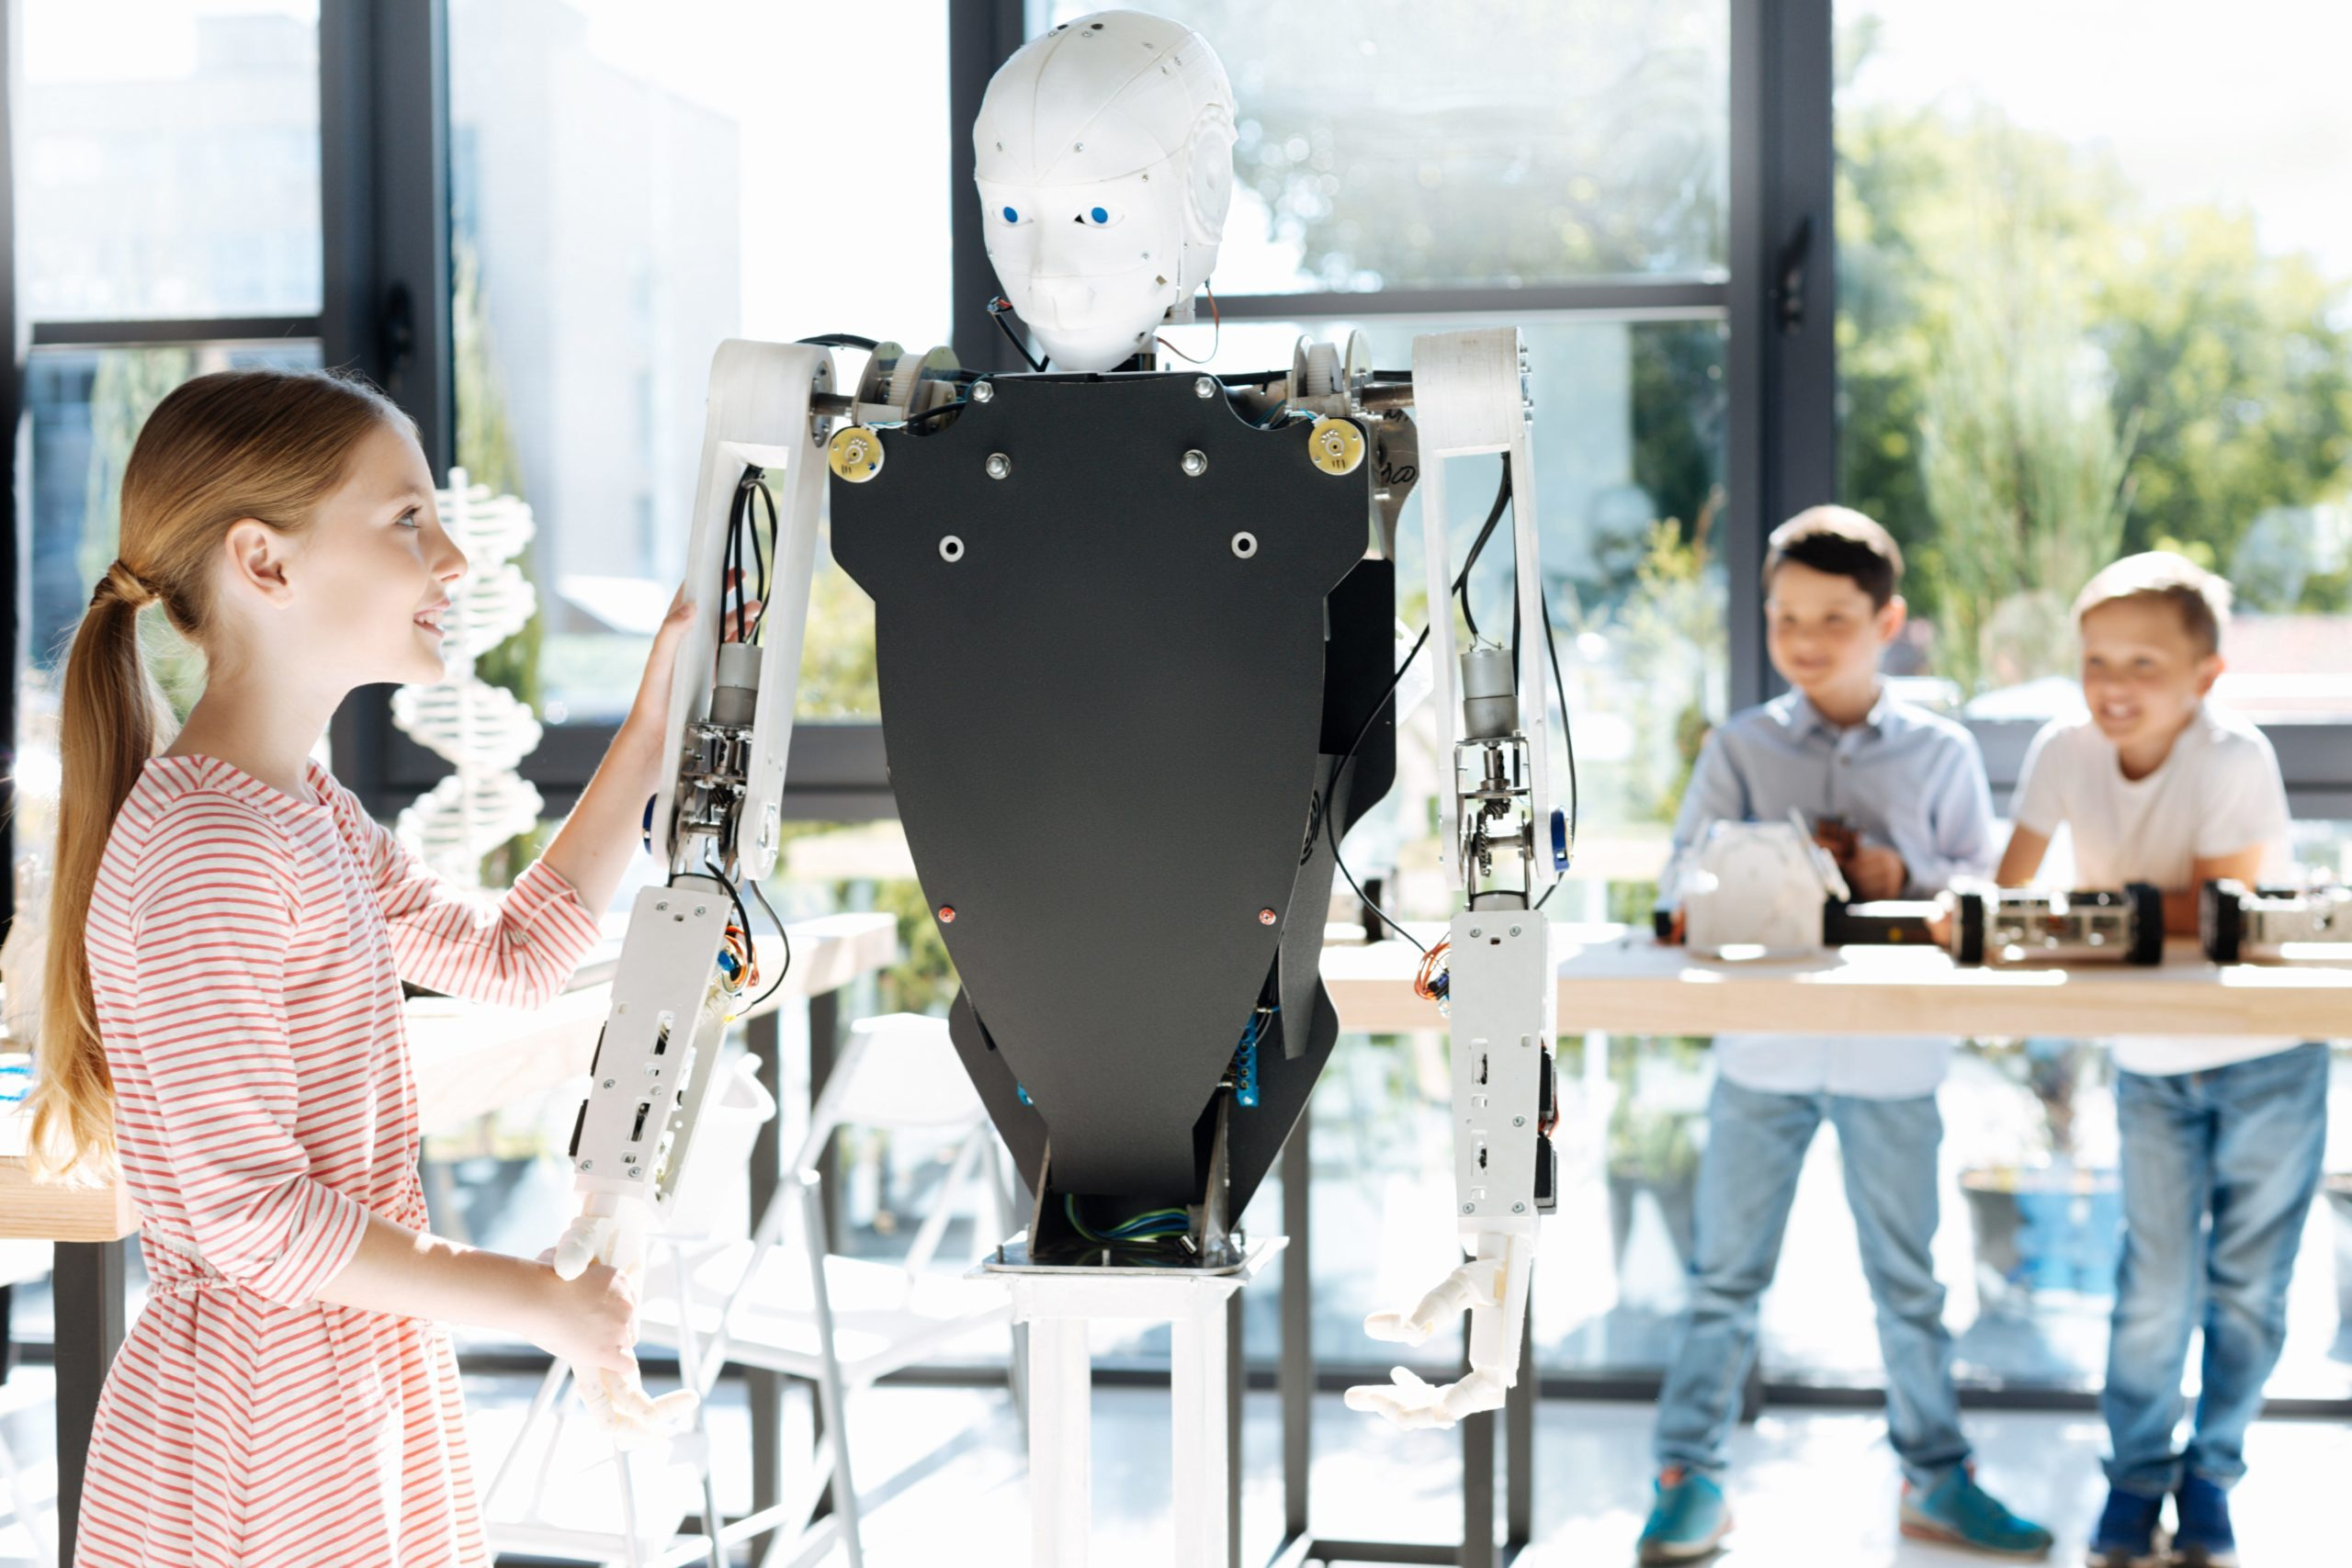 Technological achievement. Beautiful fair-haired pre-teen girl standing near a human robot, shaking its hand as if checking its flexibility while her friends looking at her in the background